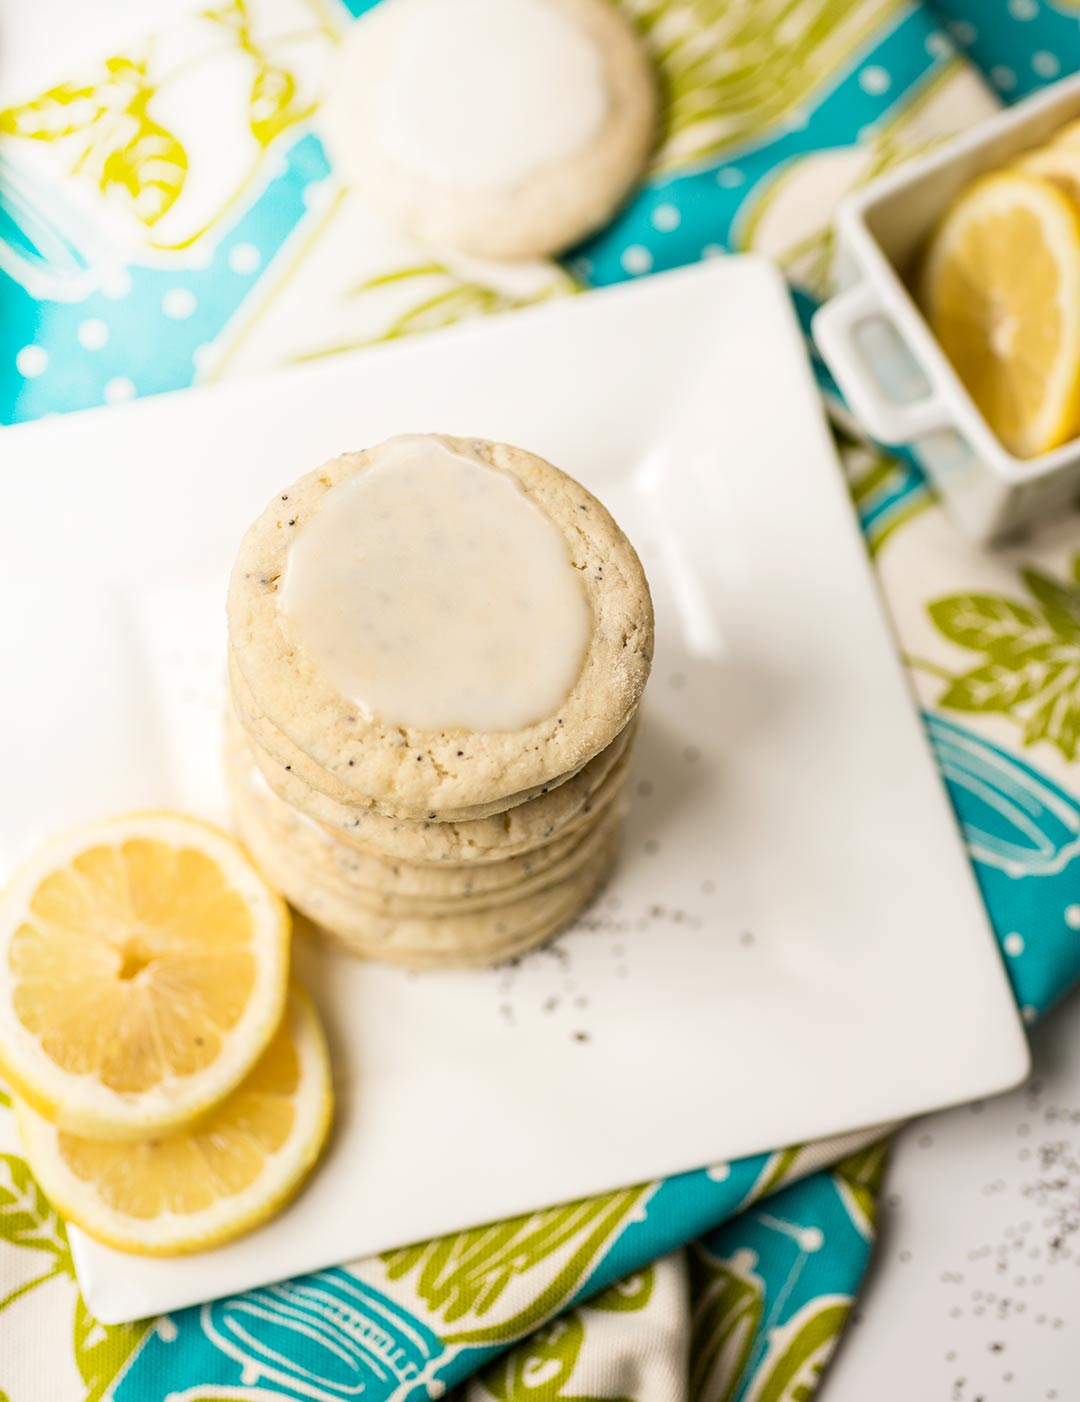 Lemon Poppy Seed Cookies - a soft, lemony cookie full of poppy seeds and drizzled with a sweet powder-sugar glaze. The perfect party treat!